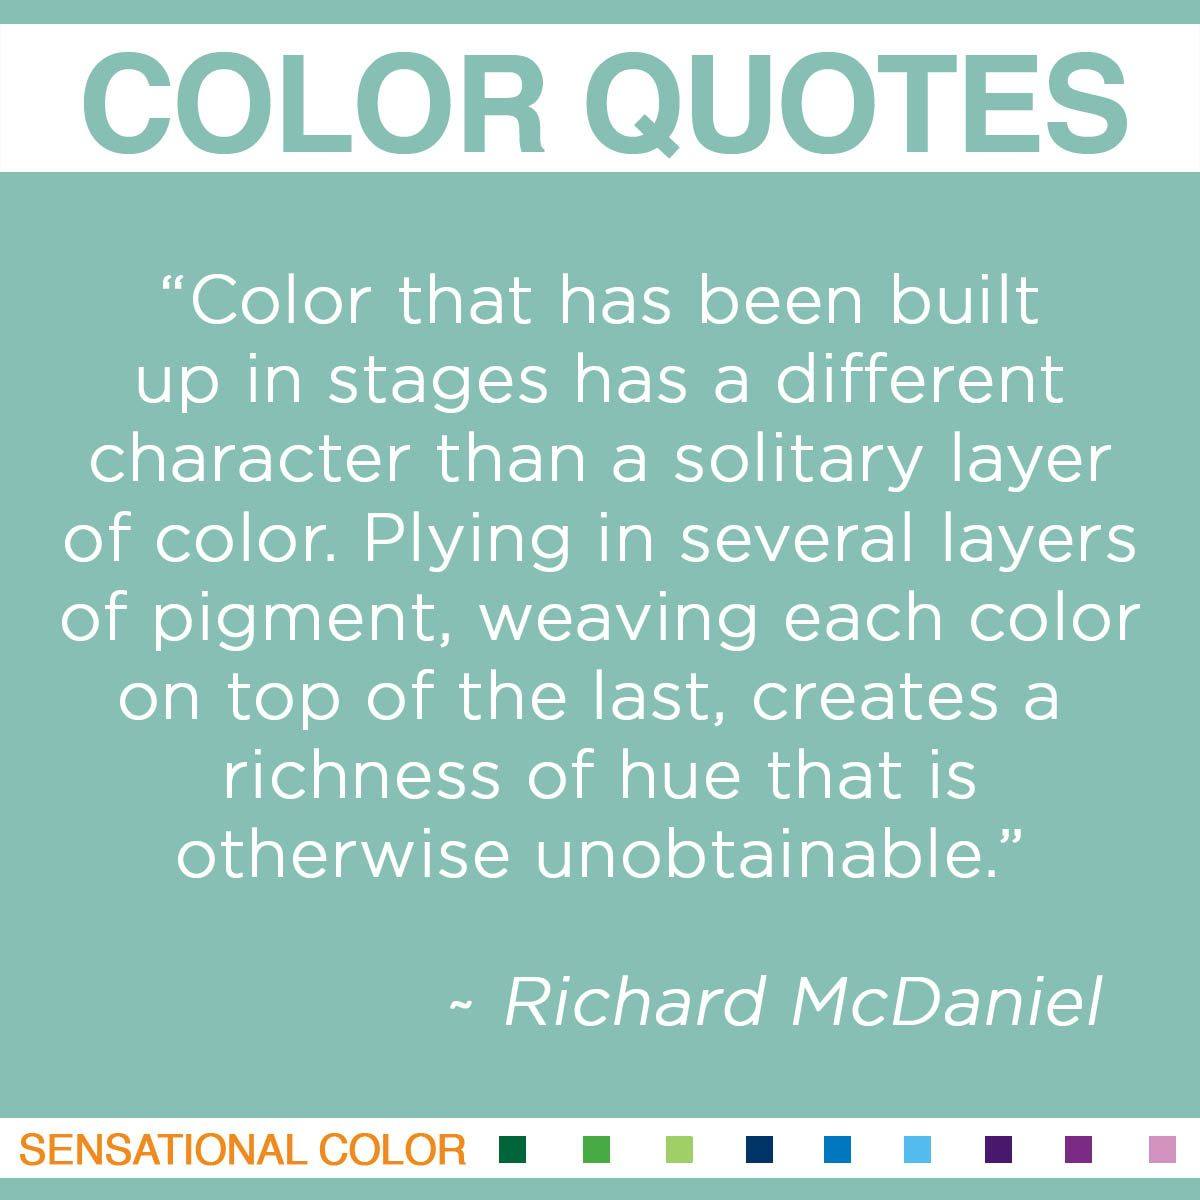 """Color that has been built up in stages has a different character than a solitary layer of color. Plying in several layers of pigment, weaving each color on top of the last, creates a richness of hue that is otherwise unobtainable."" - Richard McDaniel"